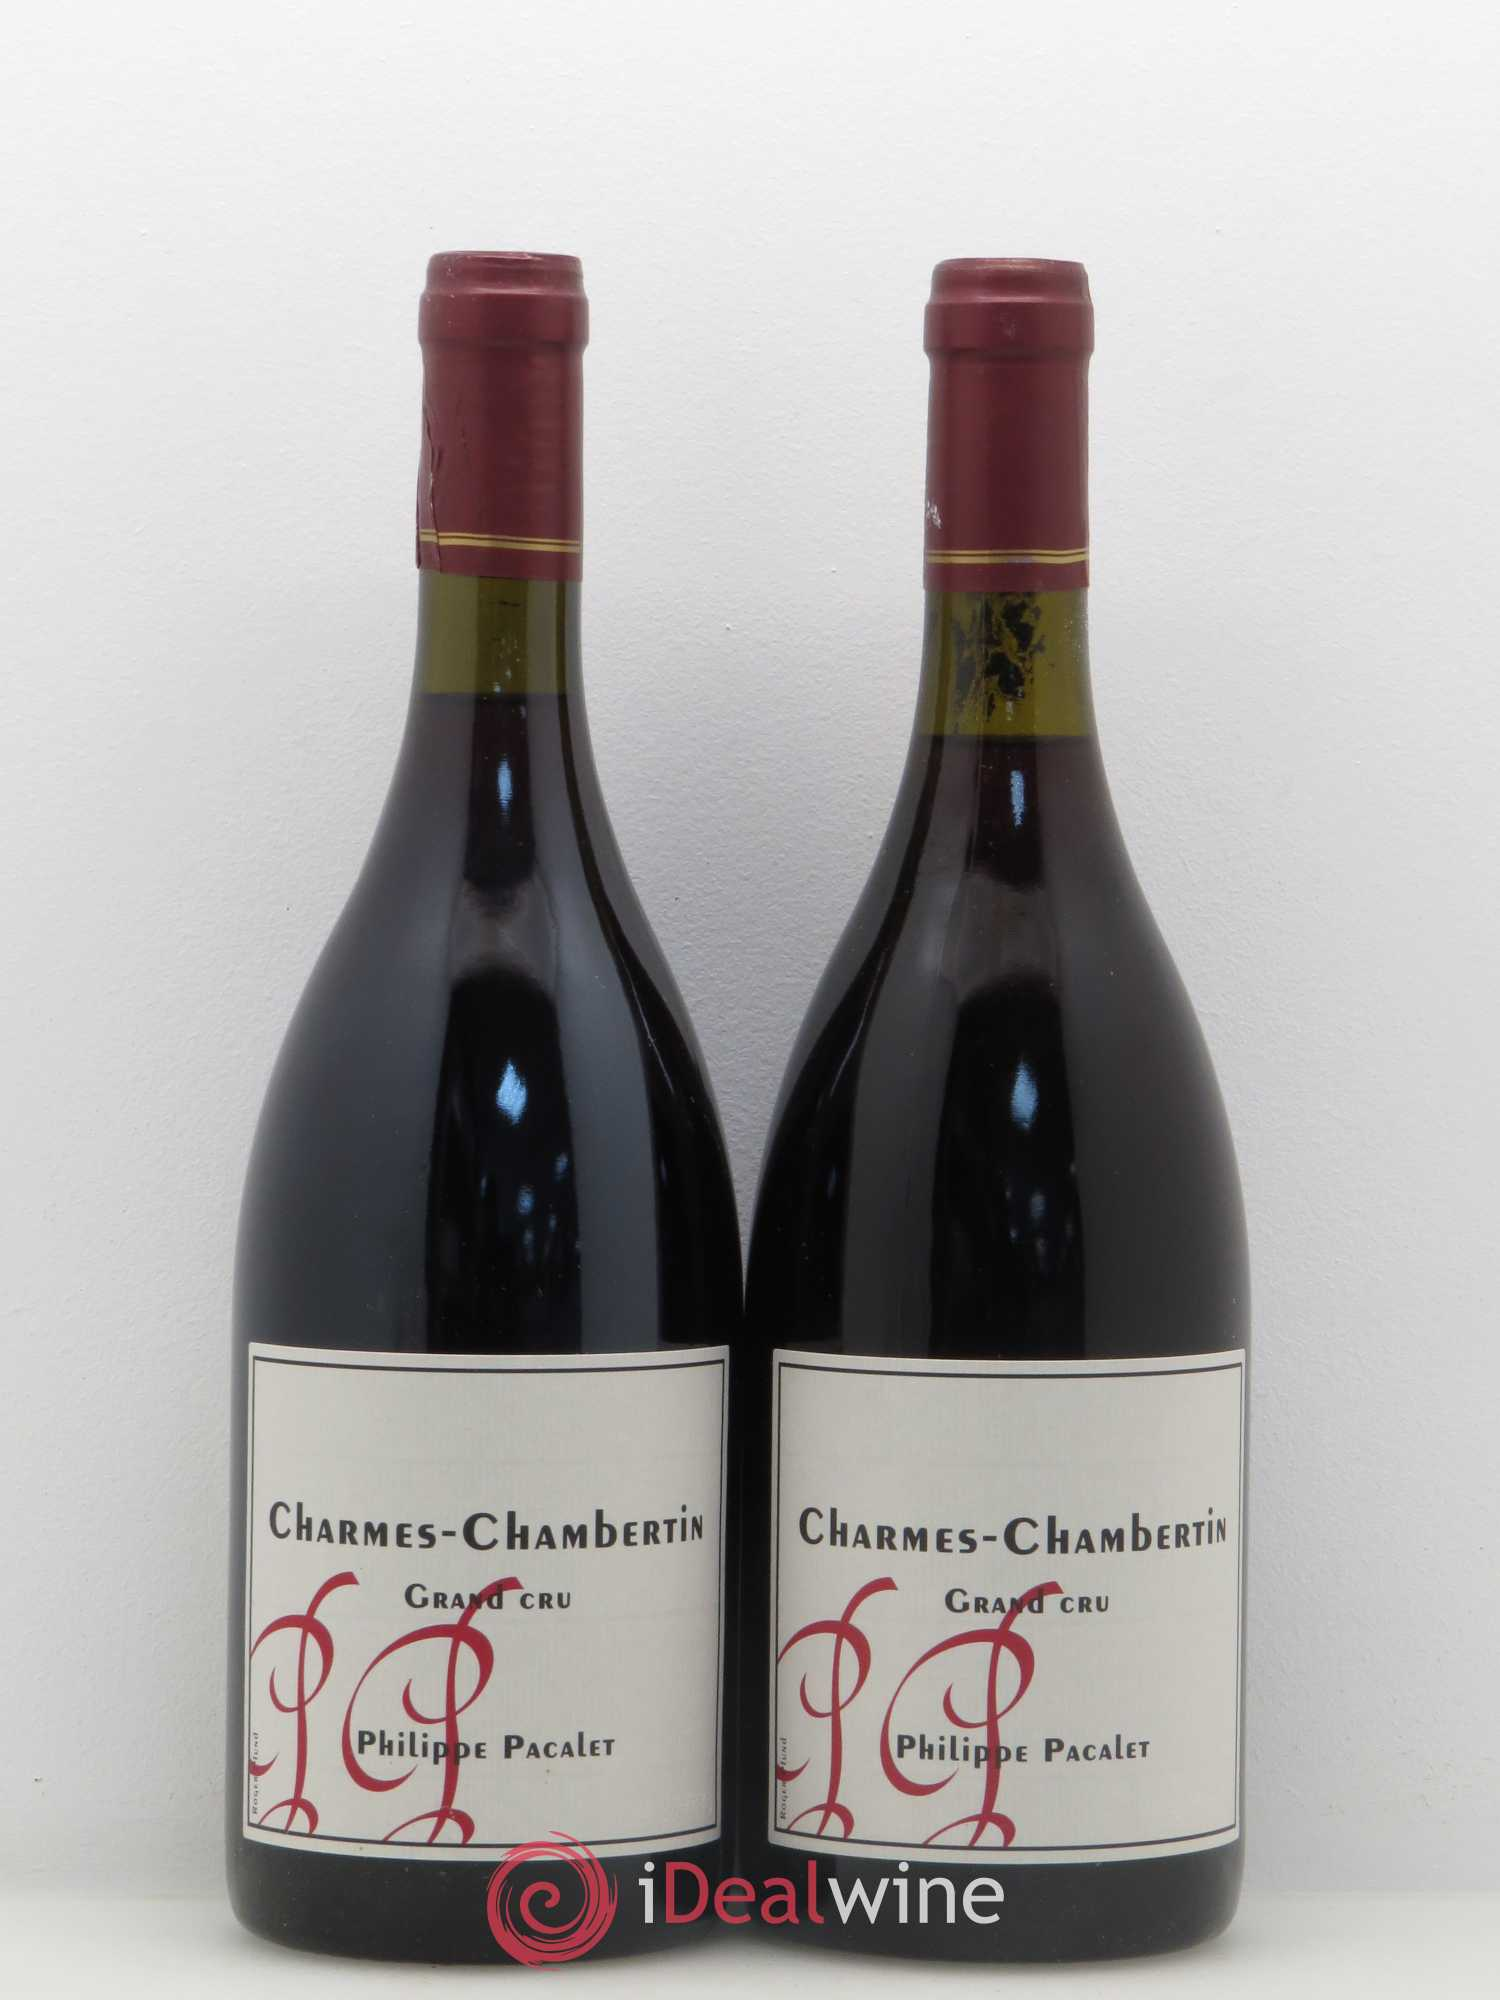 Charmes-Chambertin Grand Cru Pacalet 2004 - Lot of 2 Bottles